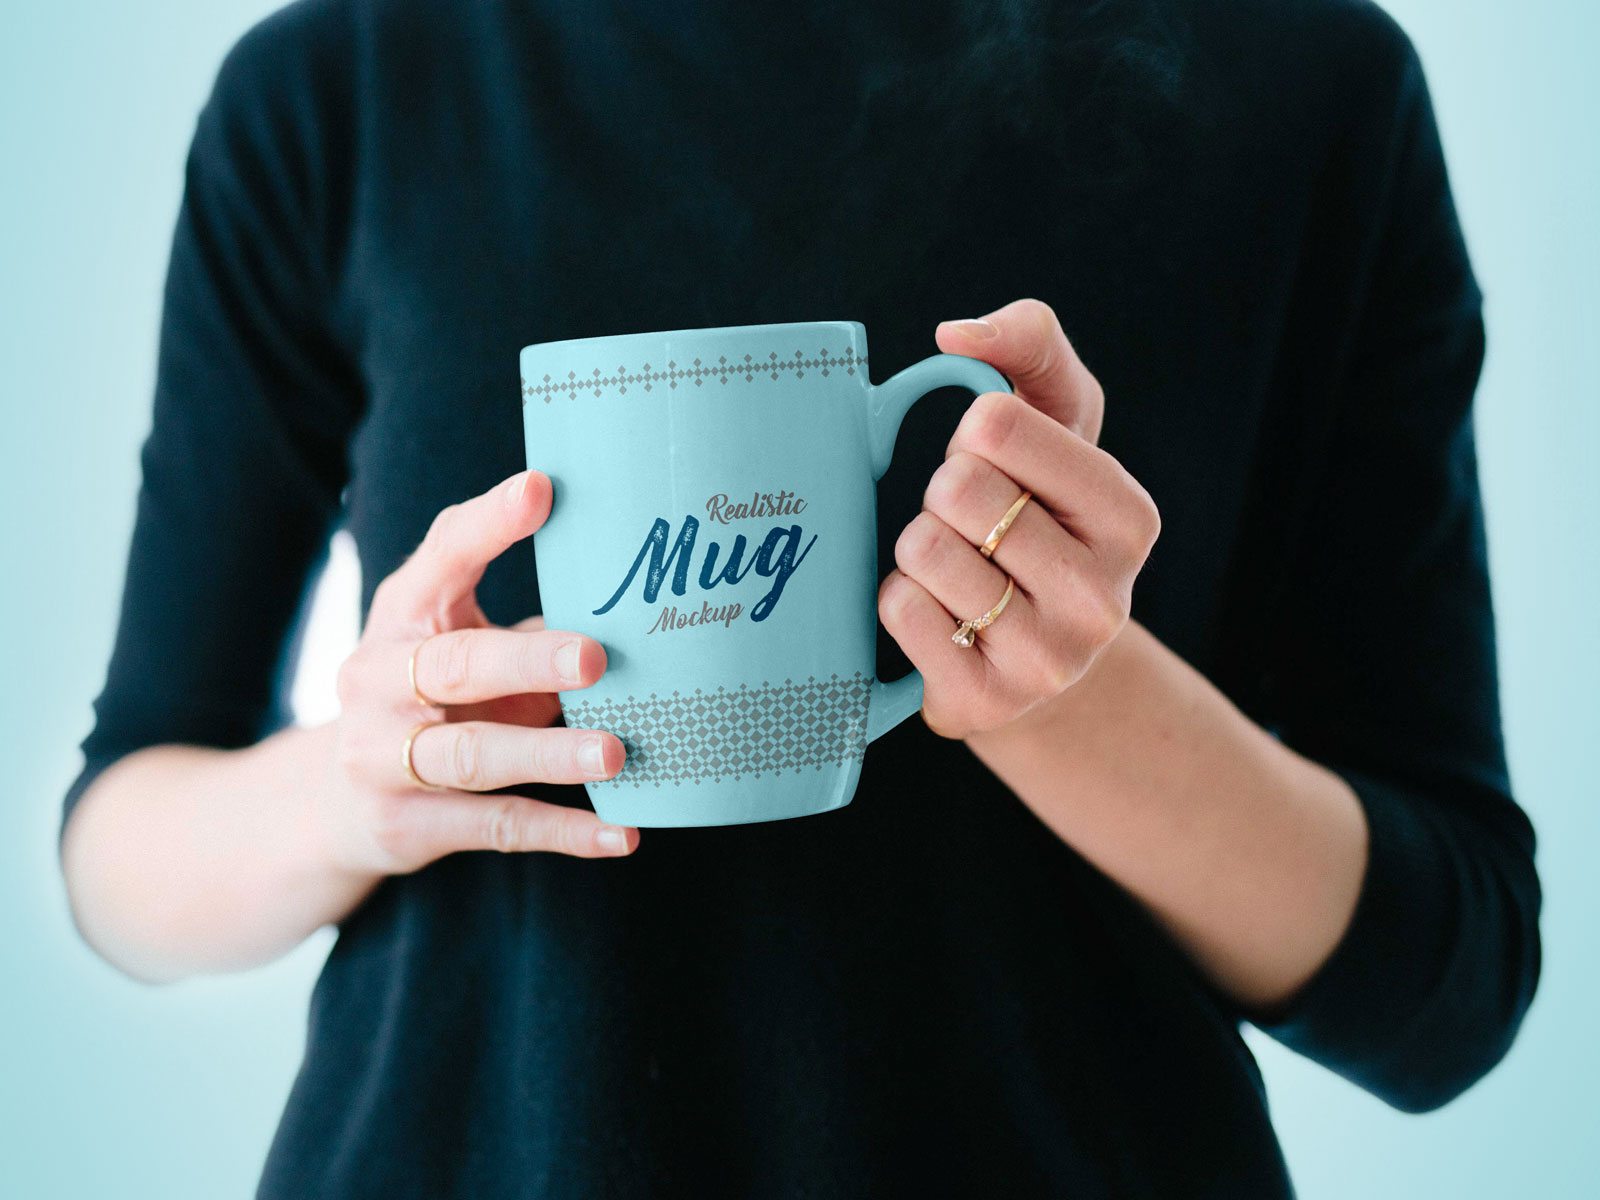 Free-Mug-in-Female-Hand-Mockup-PSD-1